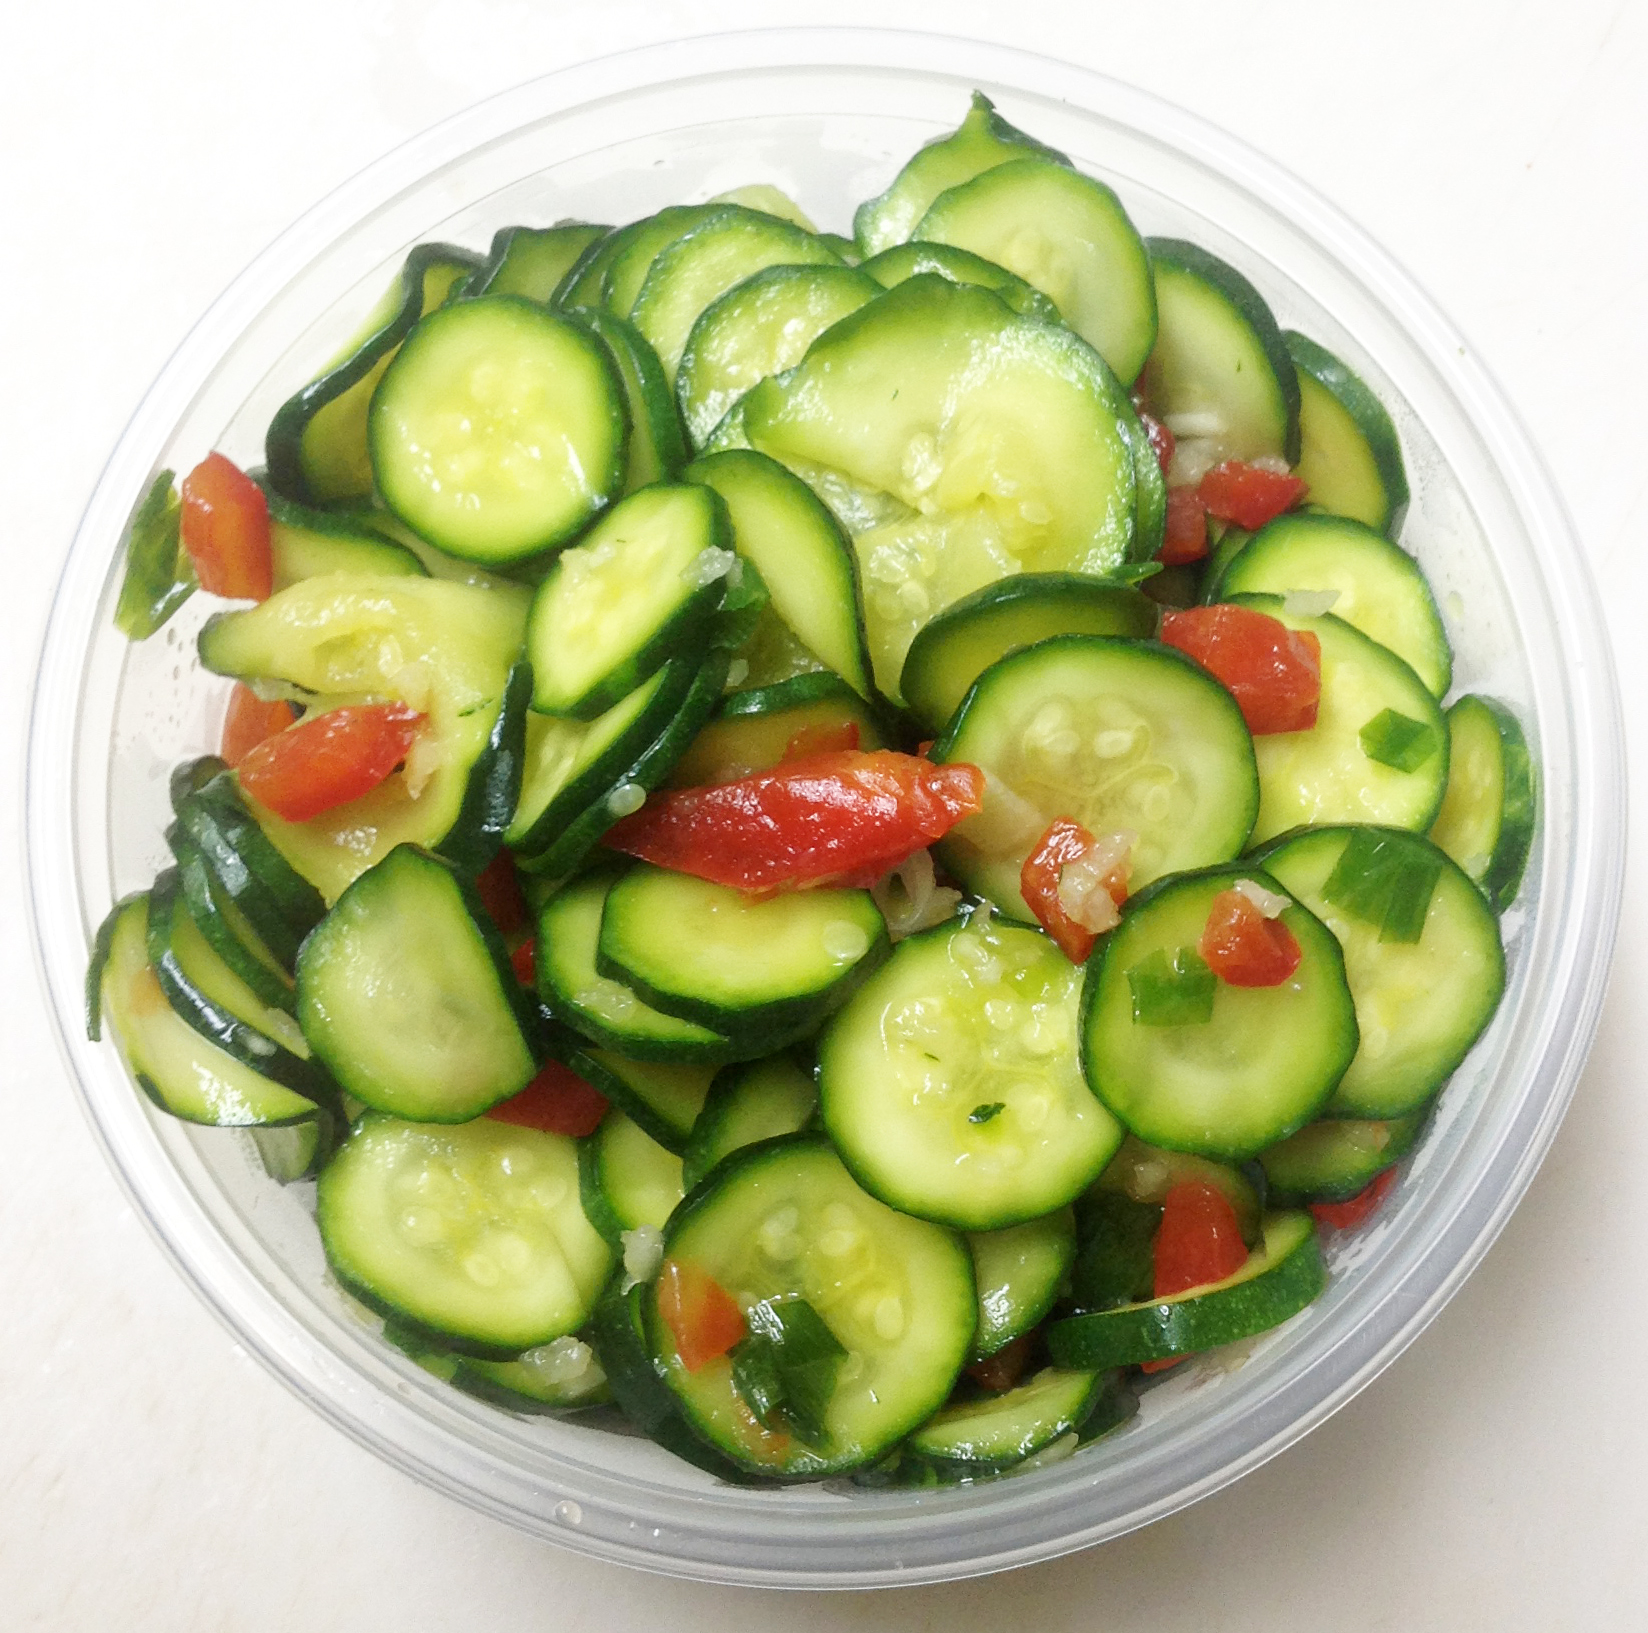 zucchini and red peppers